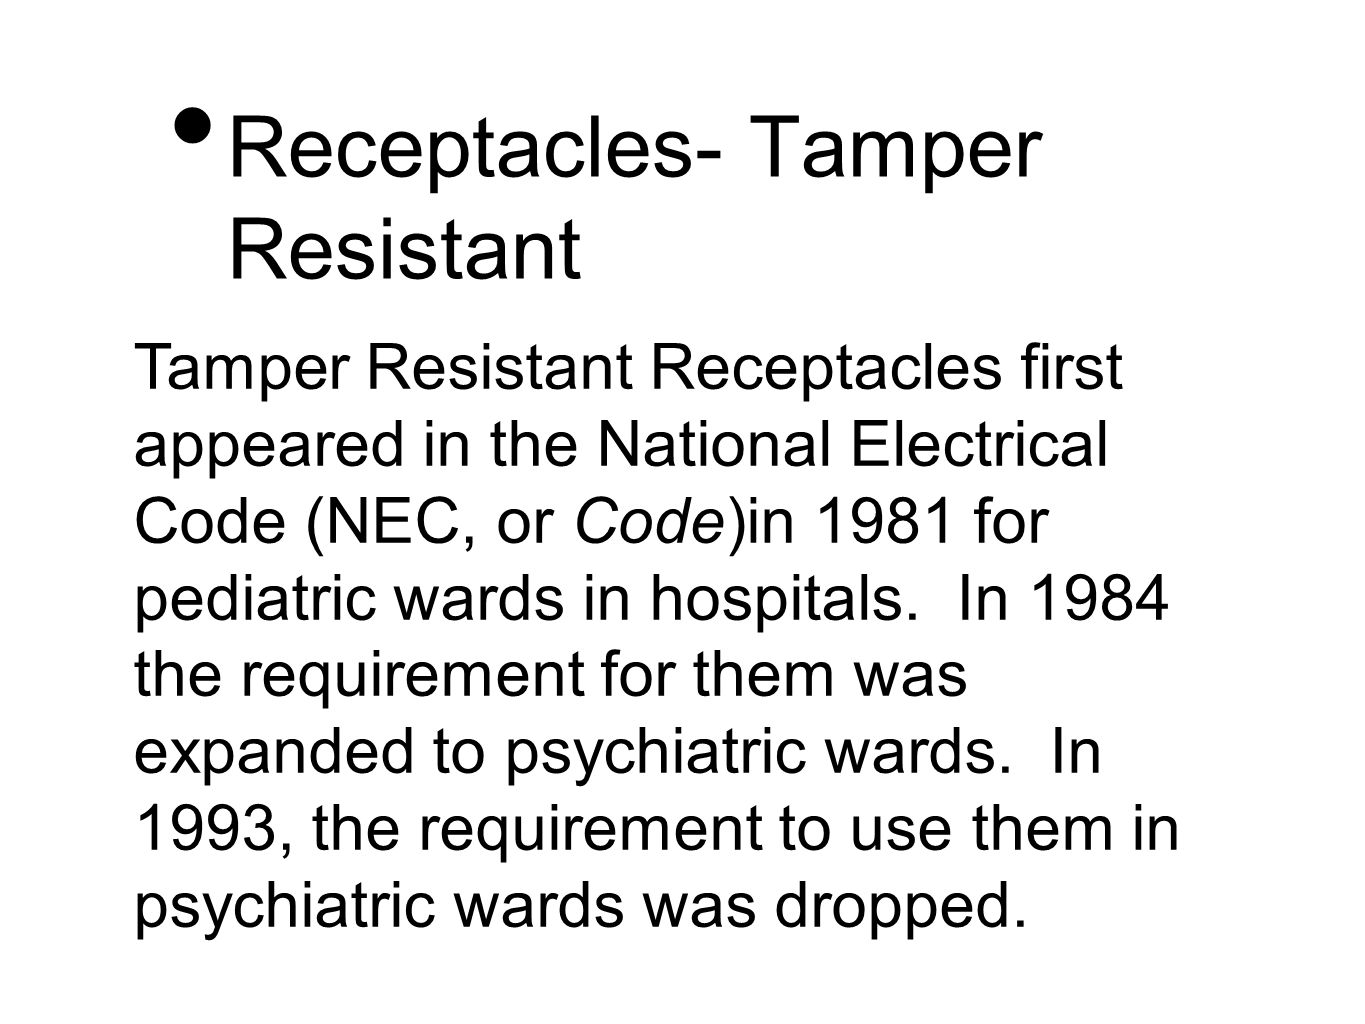 Tamper Resistant Receptacles first appeared in the National Electrical Code (NEC, or Code)in 1981 for pediatric wards in hospitals.